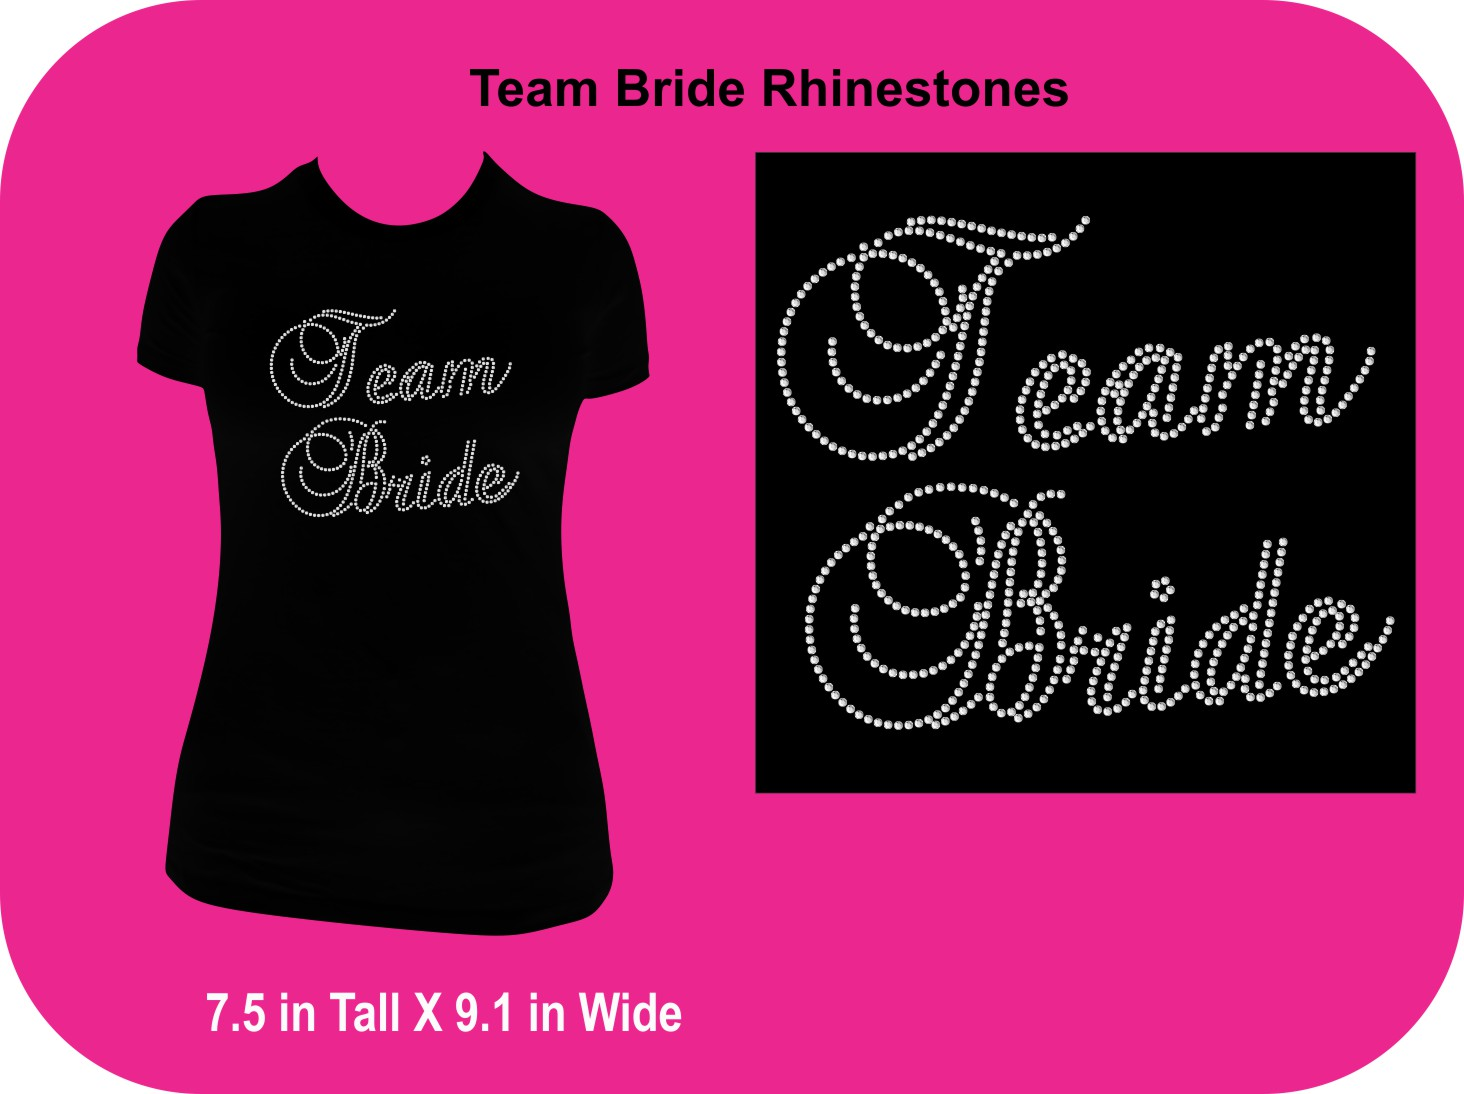 Team Bride in Rhinestones